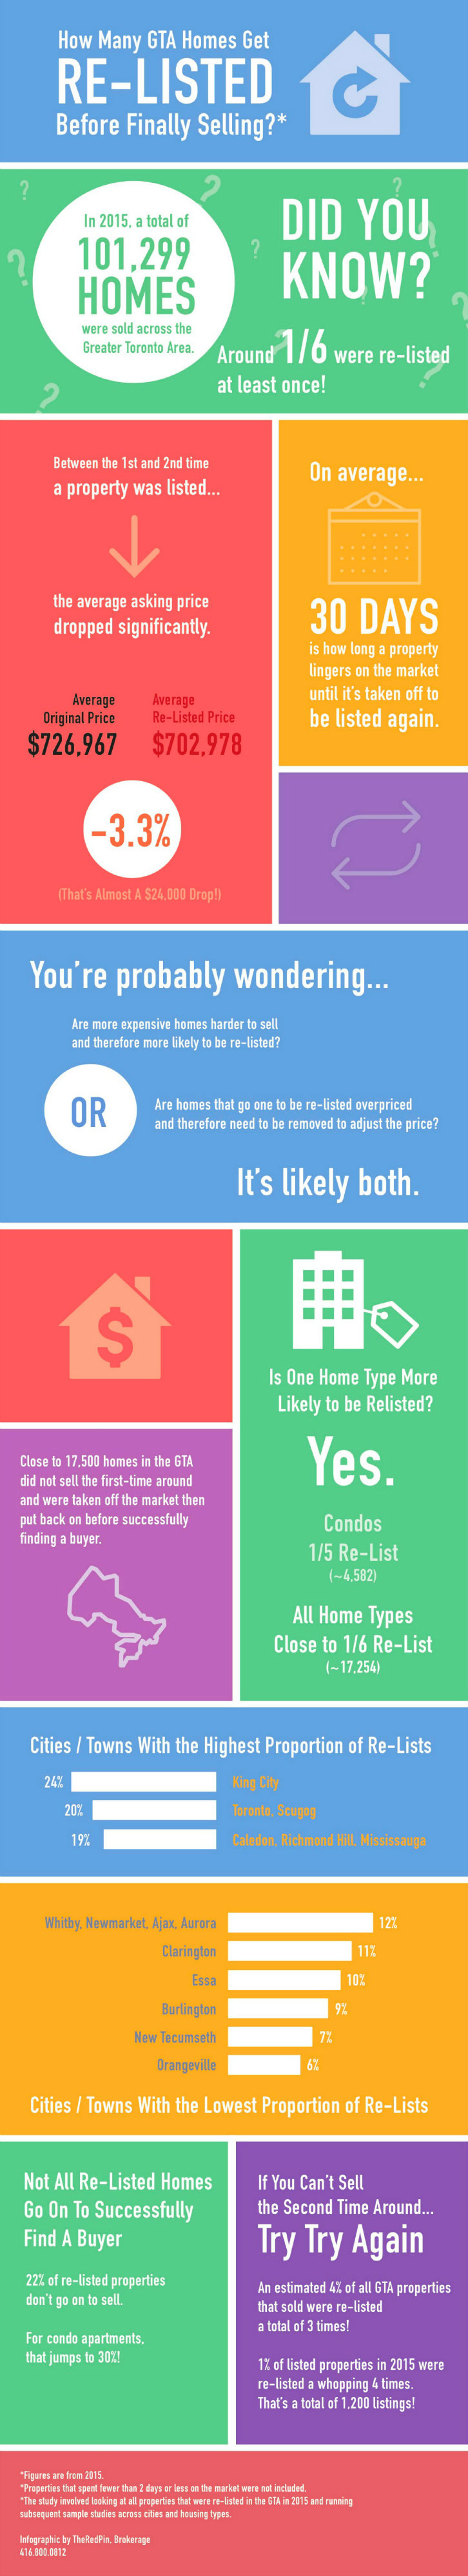 trp-relisted-homes-infographic